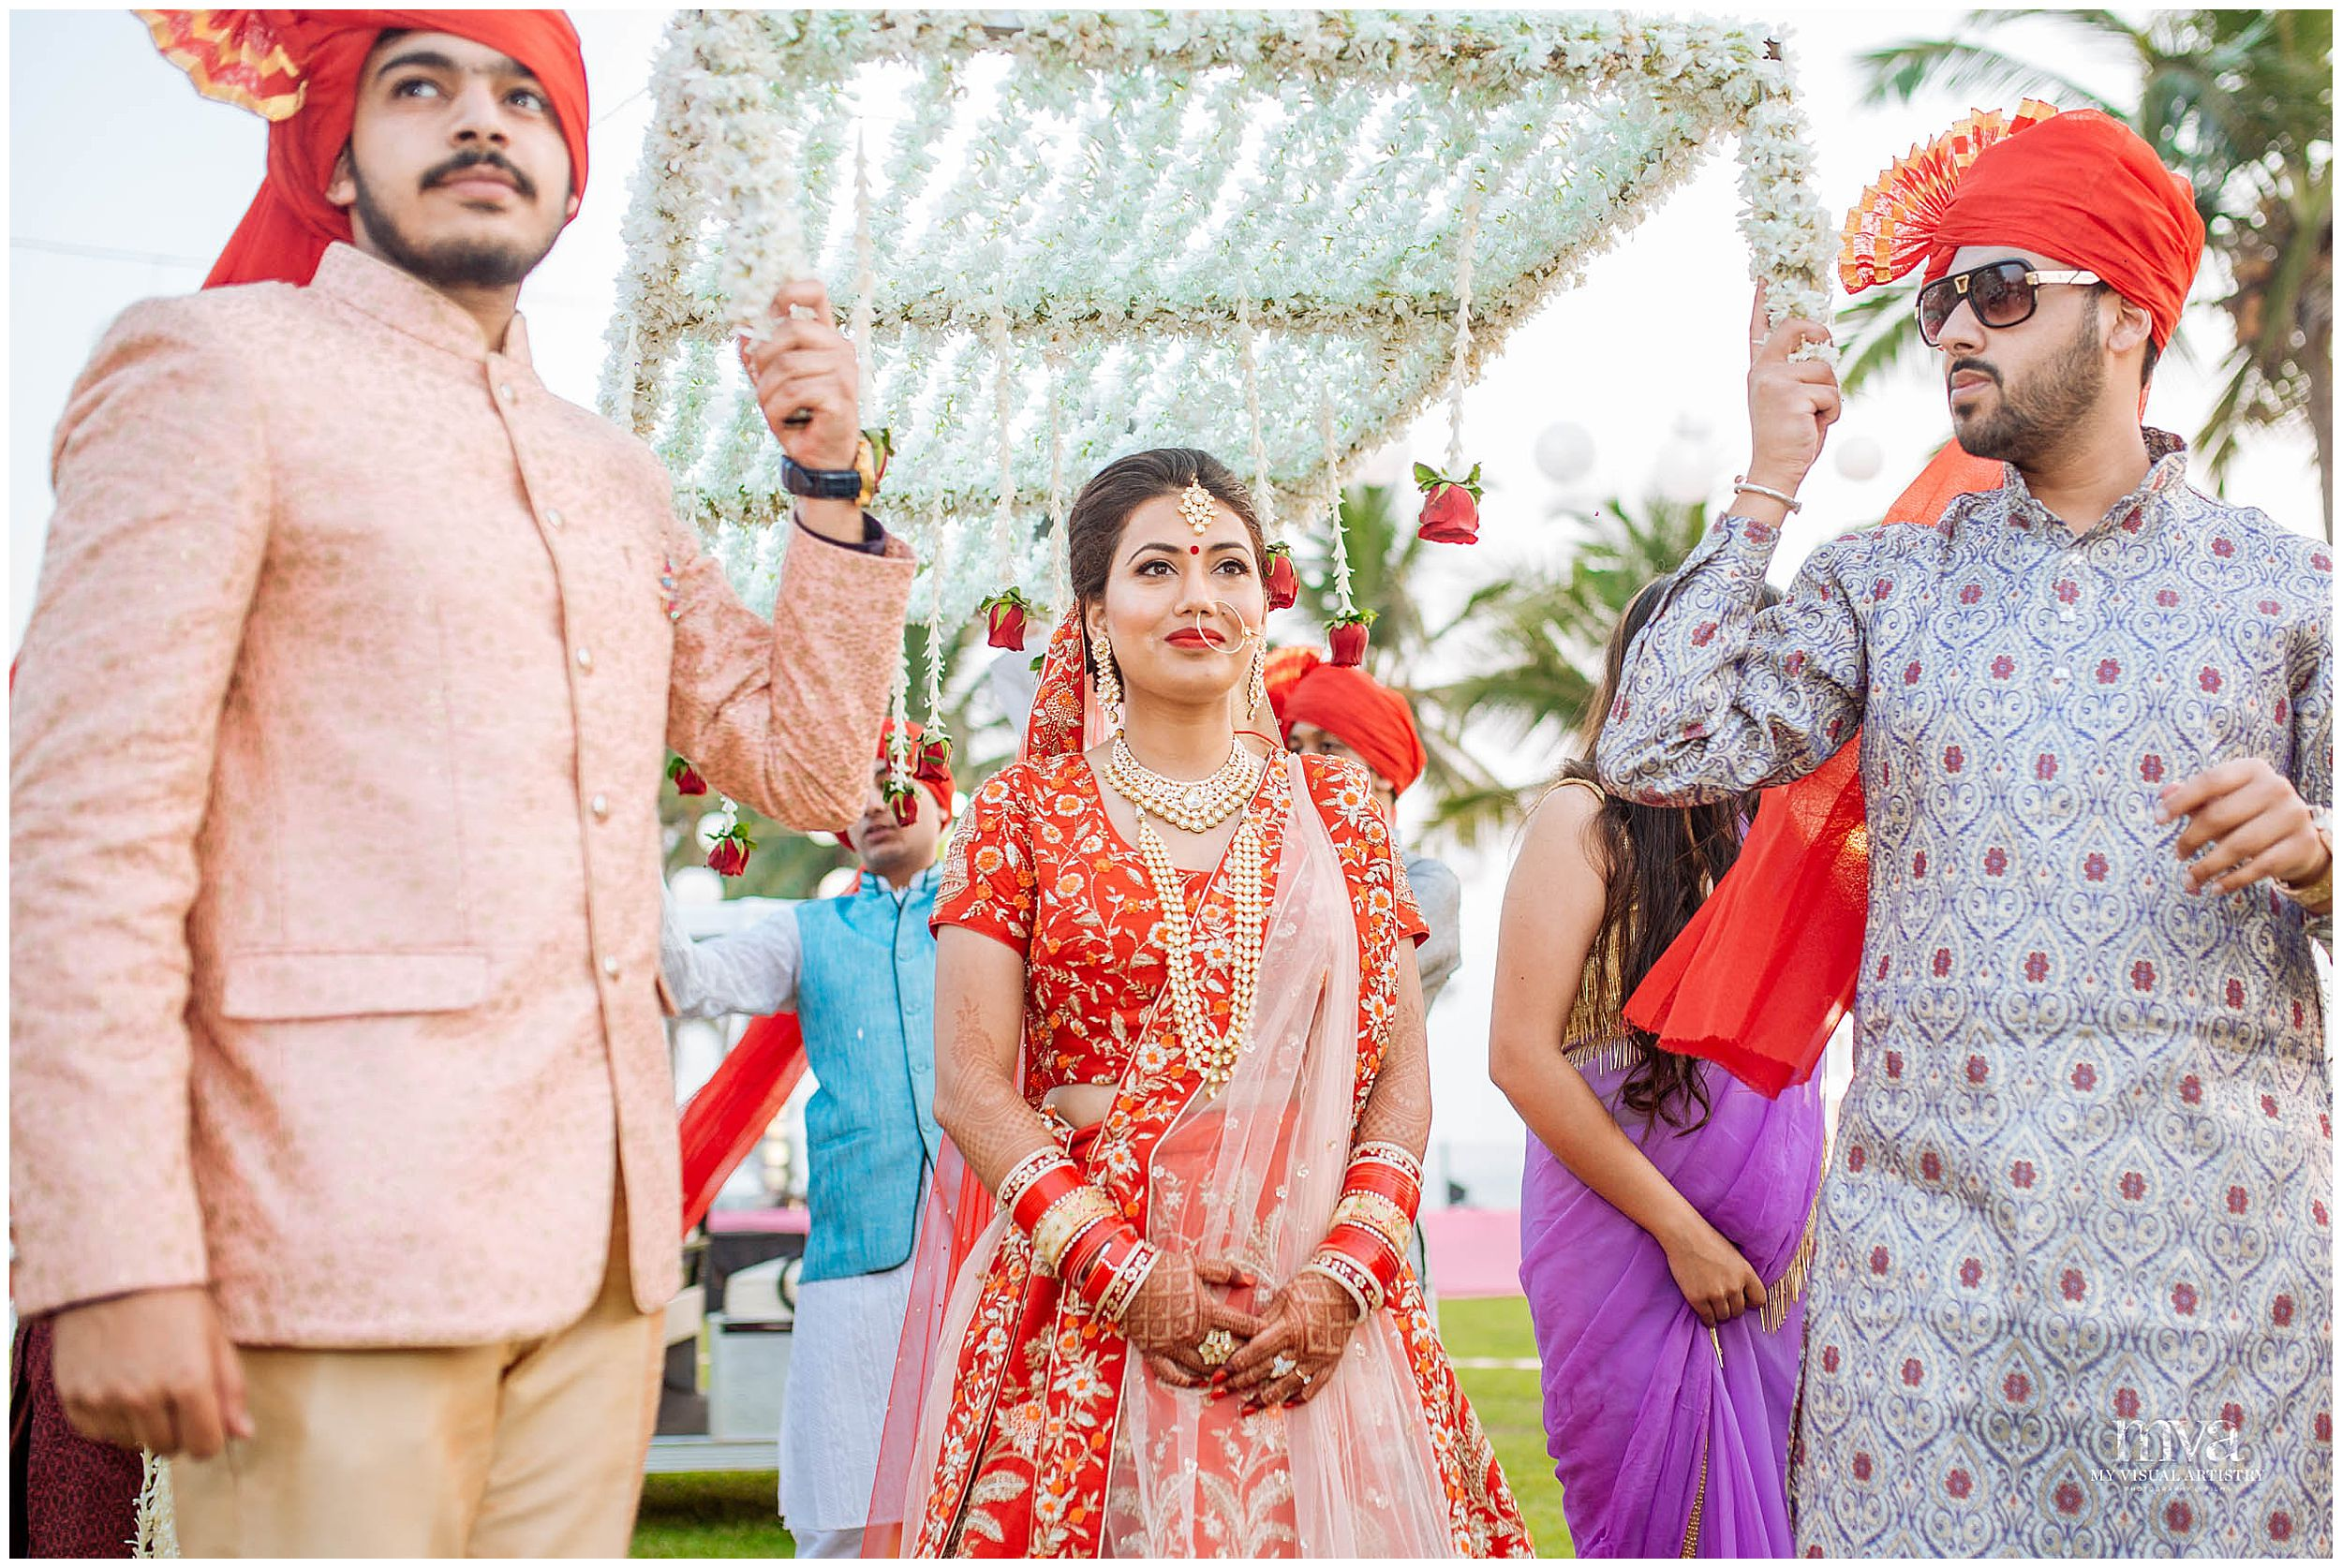 ROHIT_SANIYA_MYVISUALARTISTRY__WEDDING_PHOTOGRAPHER_GOA_DESTINATION_CAREVELA_RESORT_0018.jpg